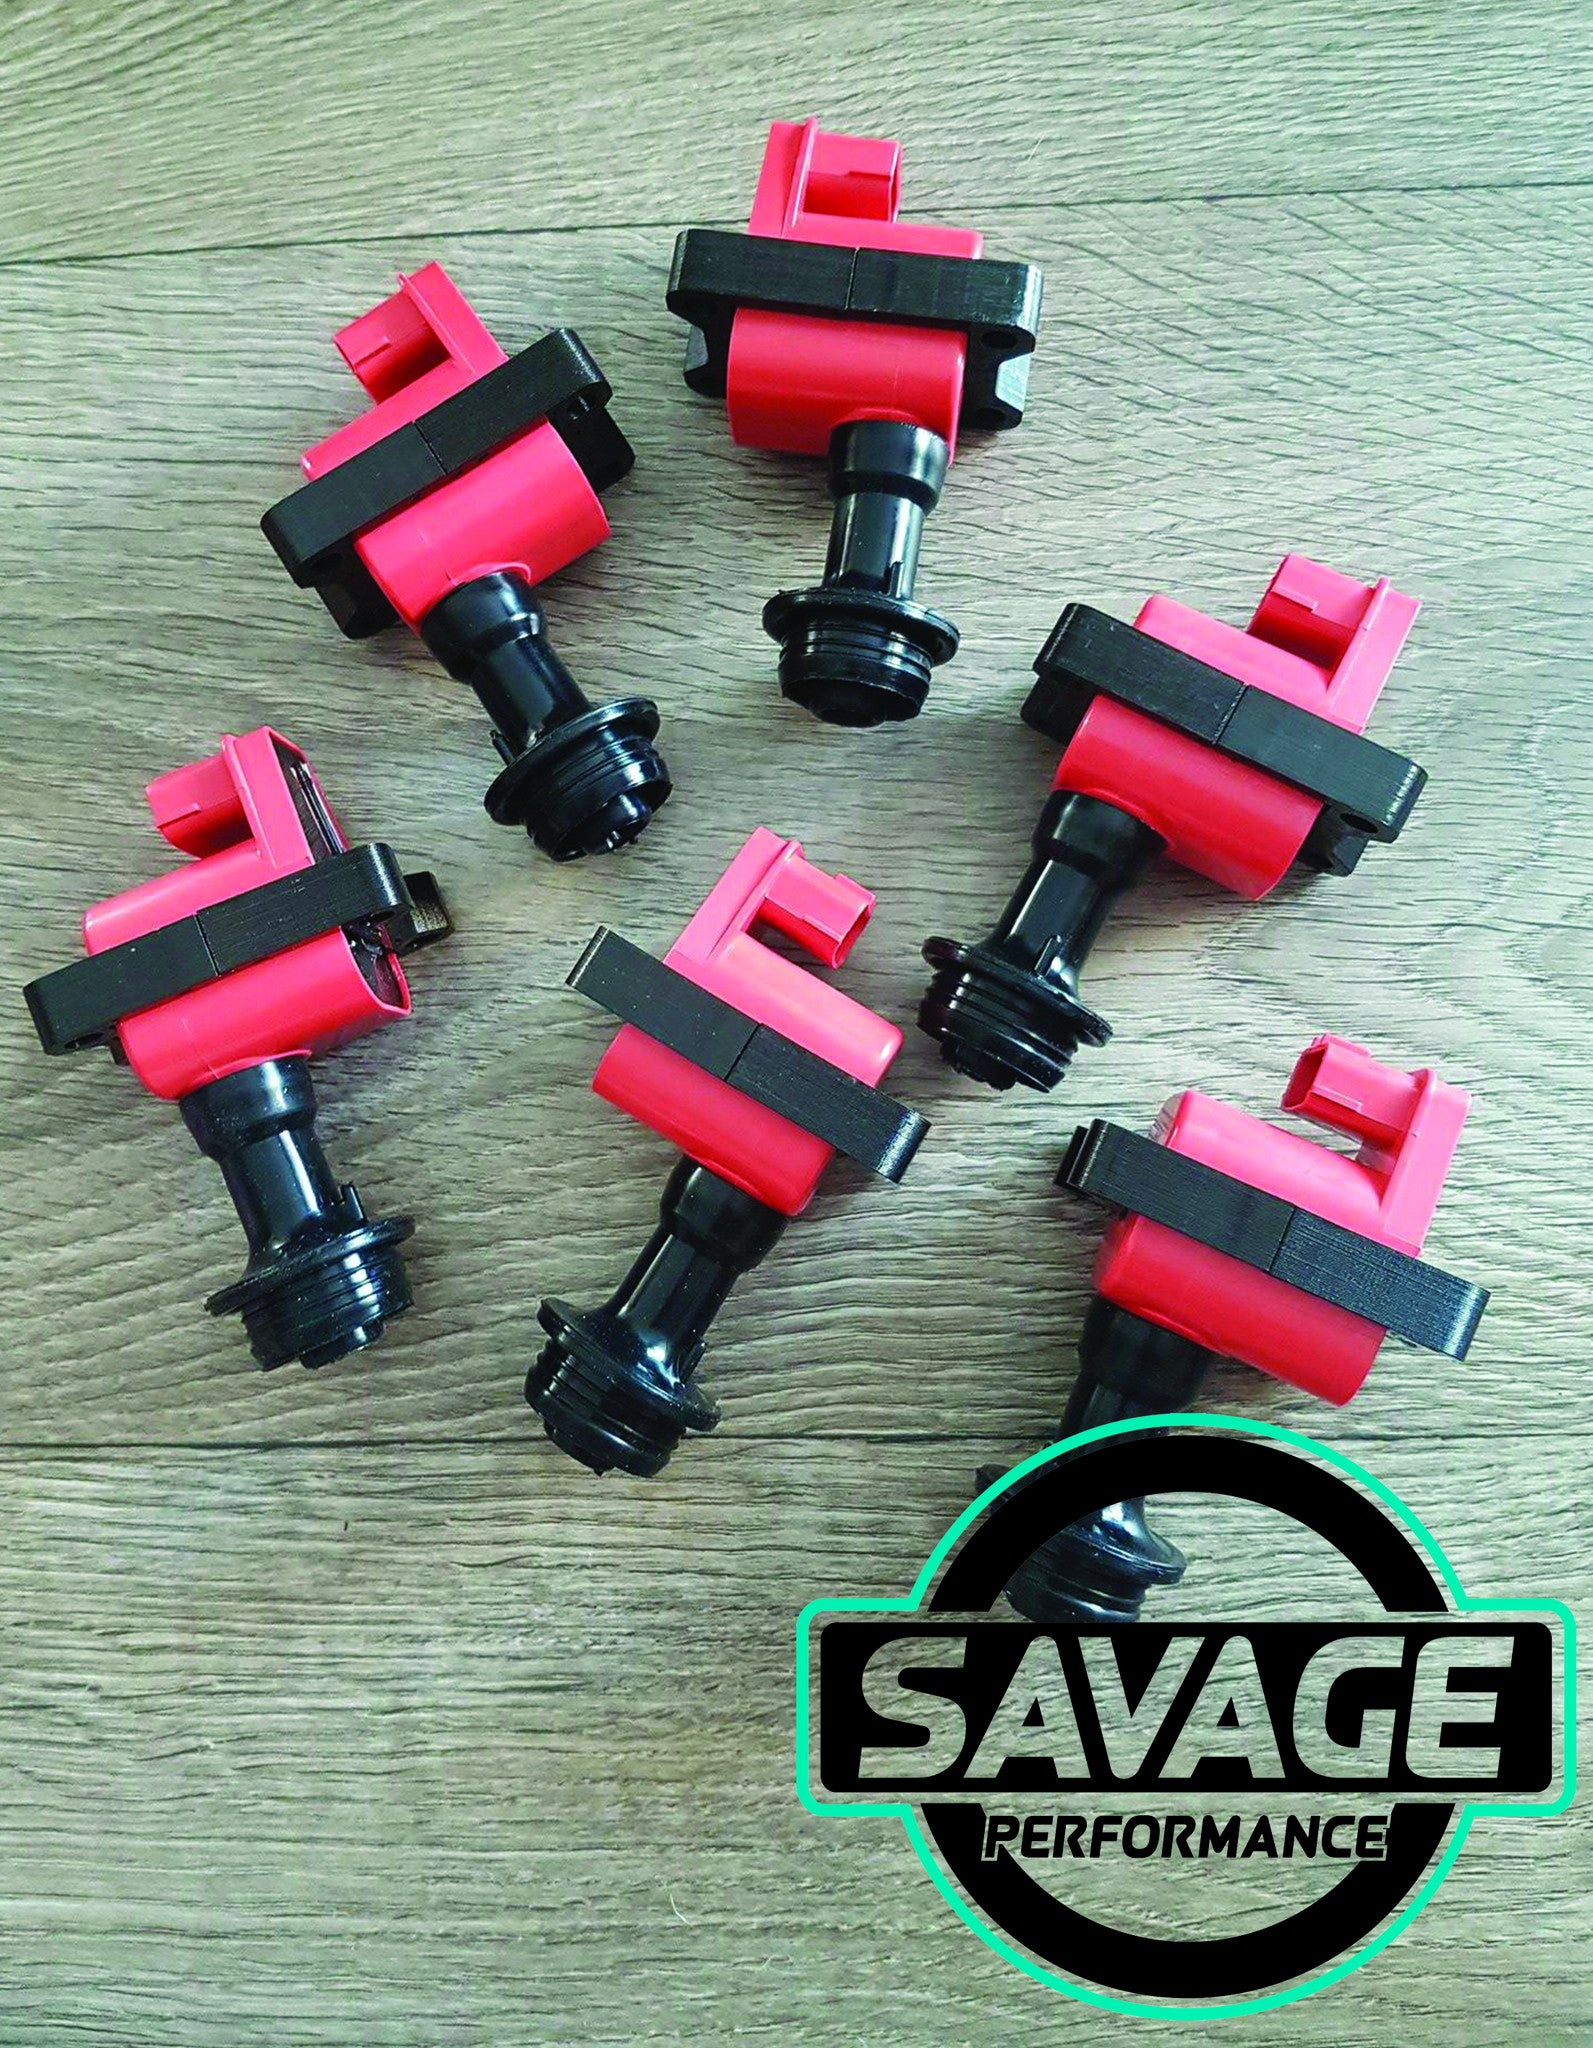 6x RB Series 1 Coilpacks R32 R33 Skyline RB20DET RB25DET RB26DETT 22433-60U02 *Savage Performance*